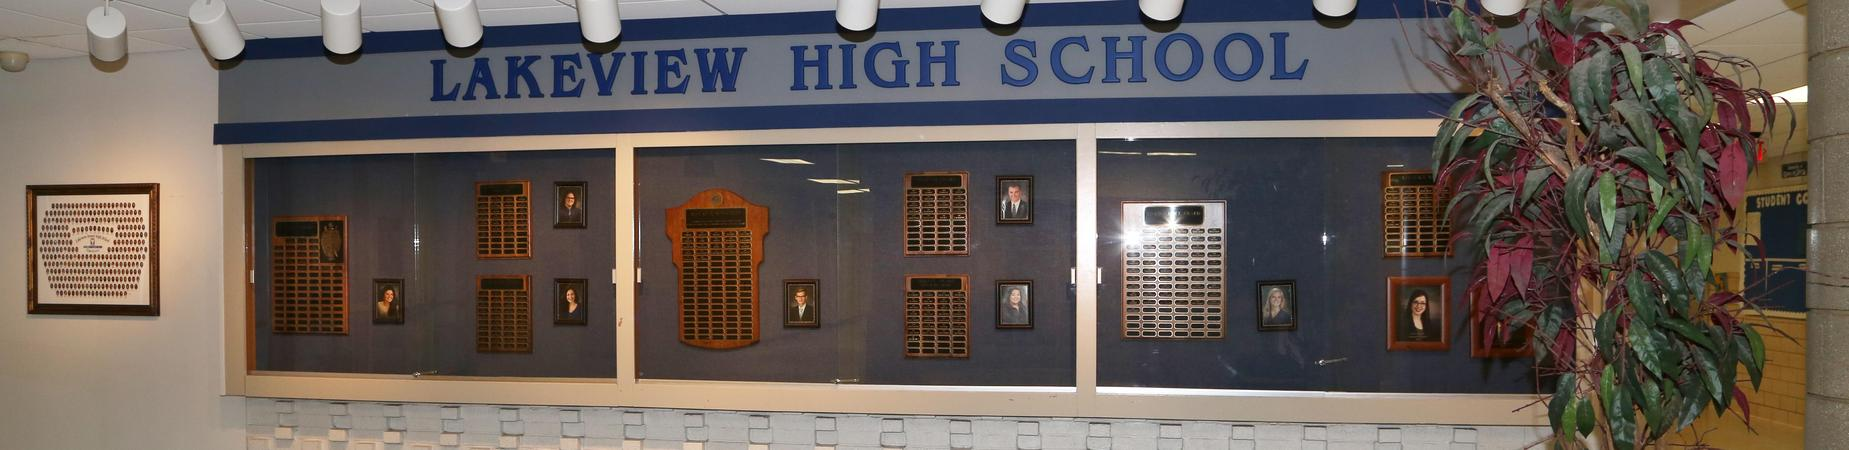 LHS wall of fame